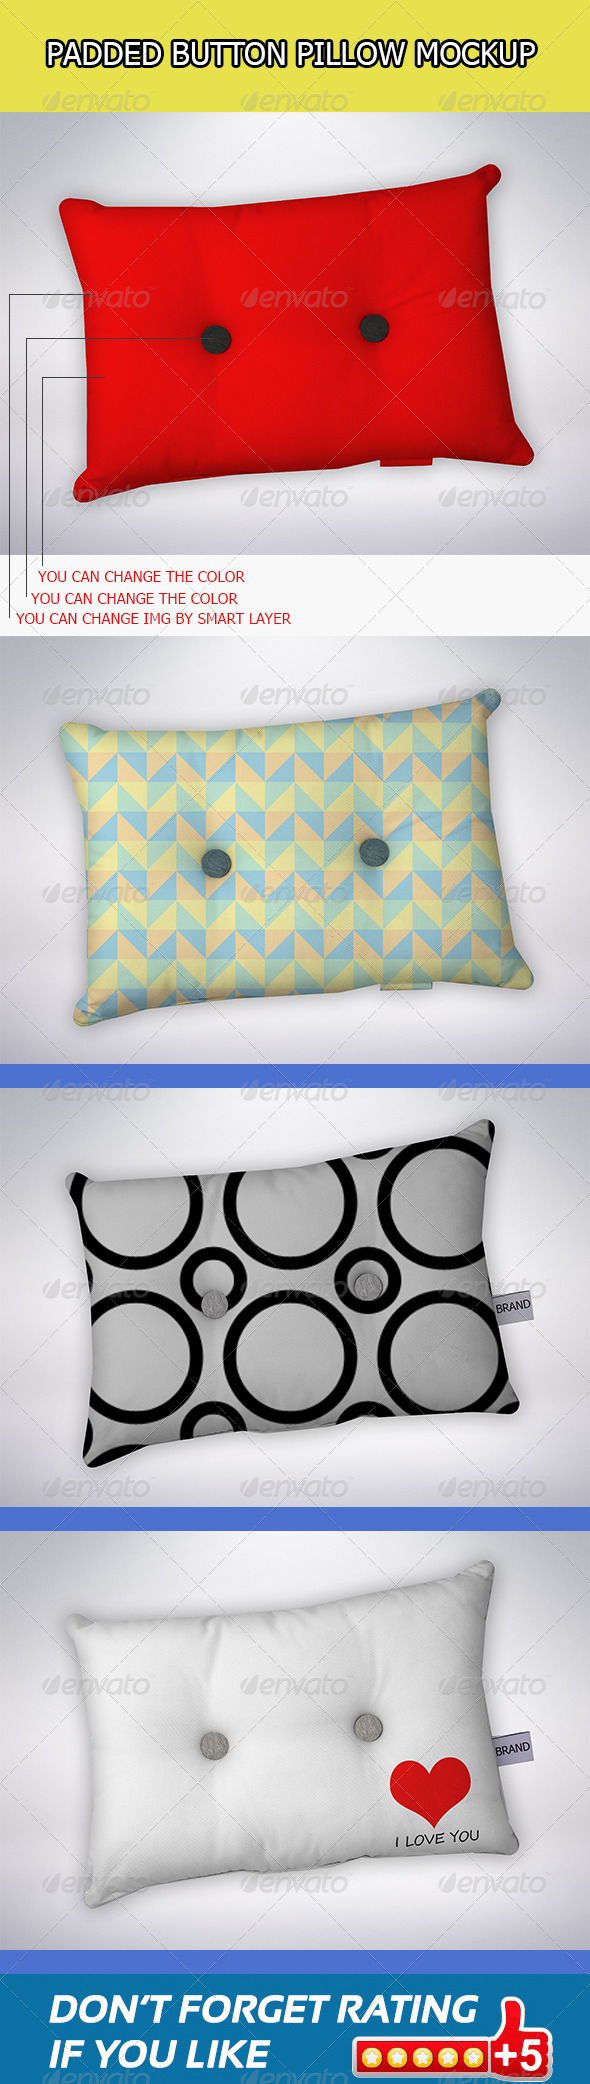 GraphicRiver Padded Button Pillow Mock-Ups 7144101